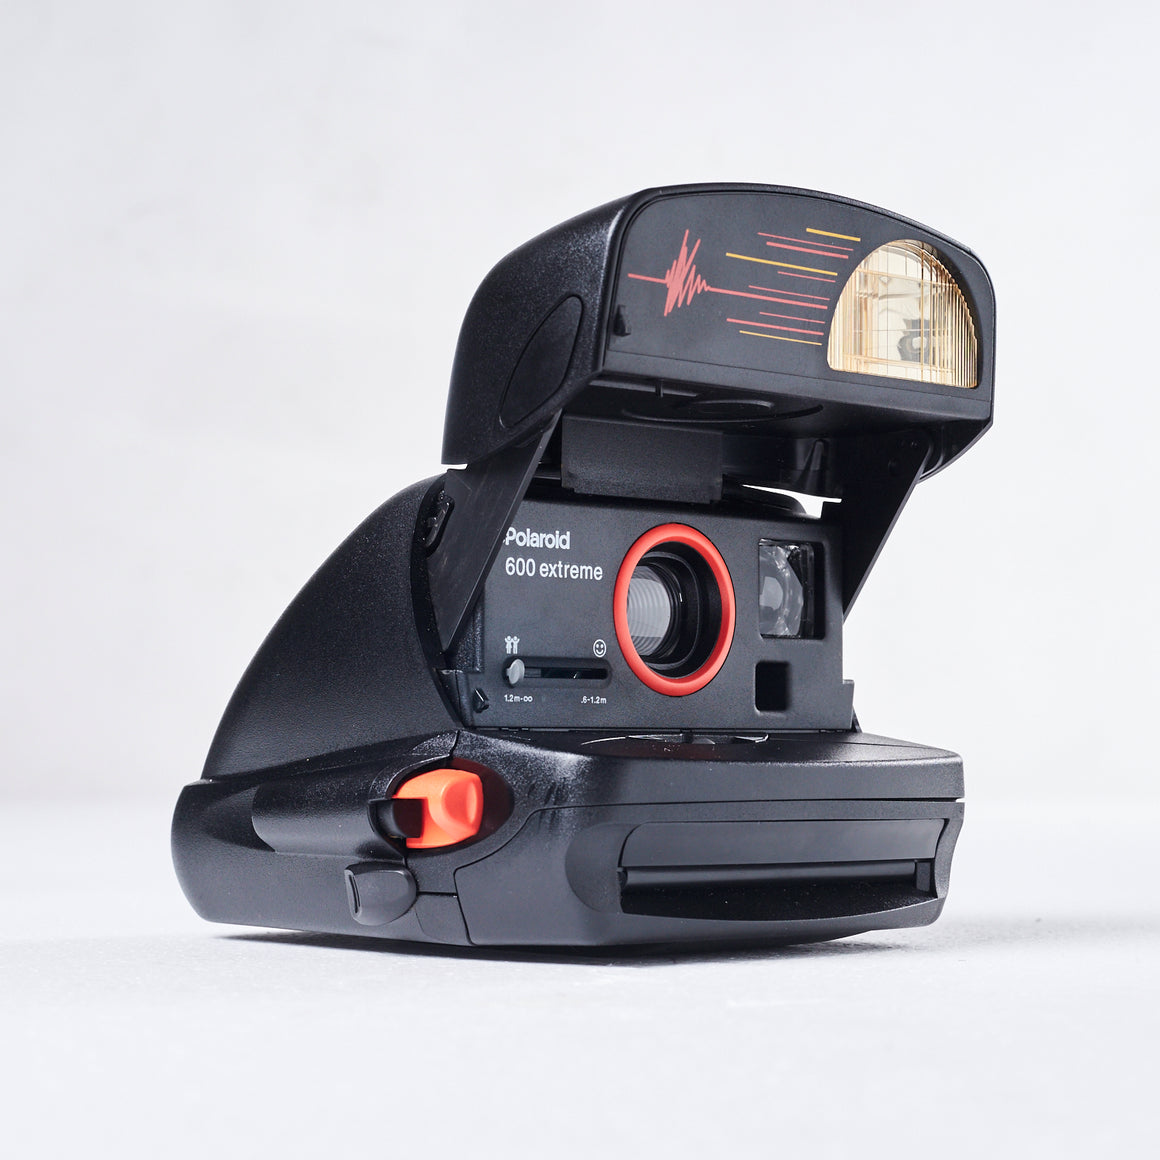 Polaroid 600 Extreme One Step Flash Instant Camera